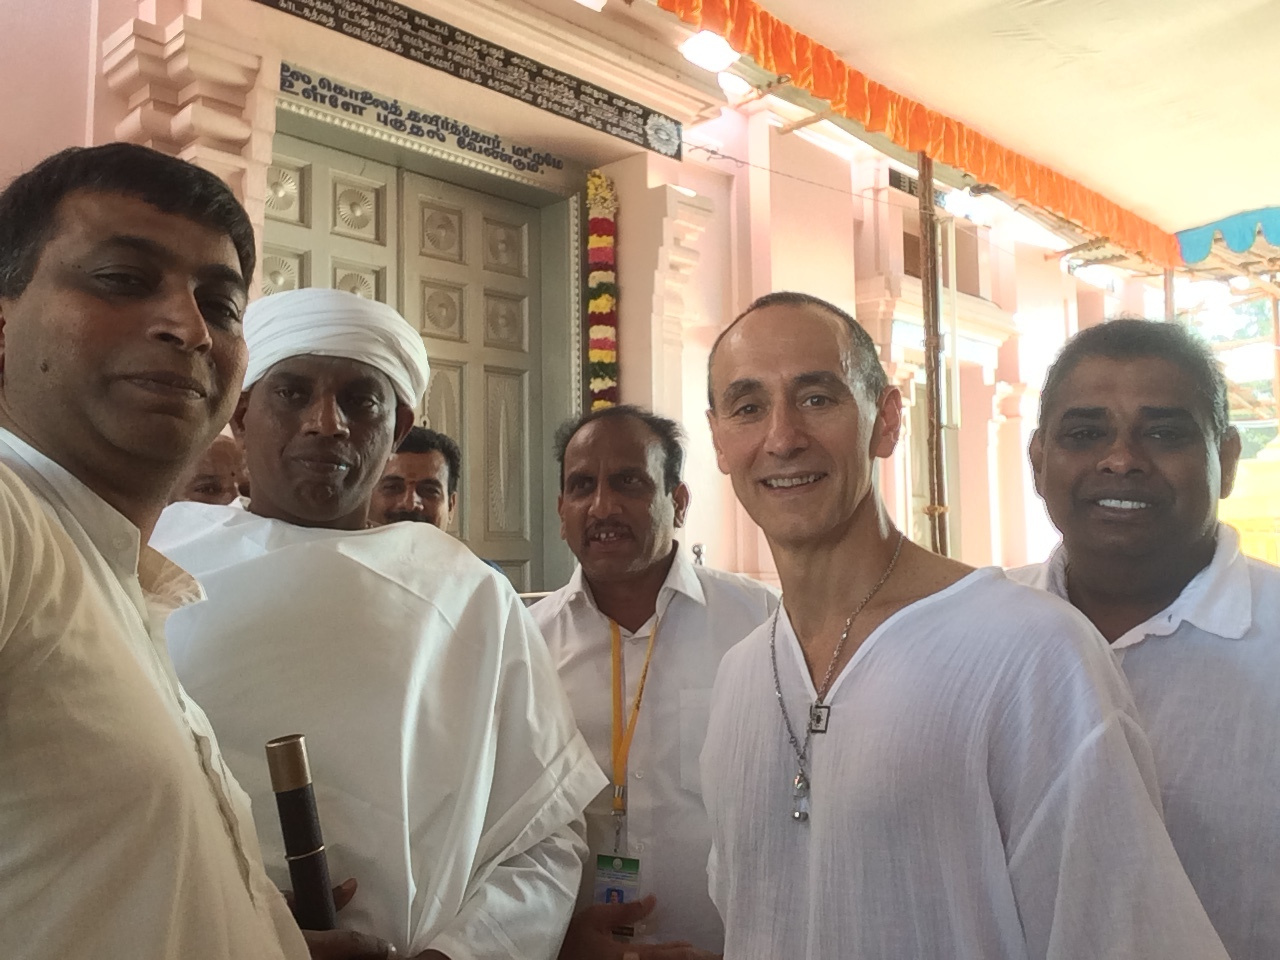 Siddha Yoga Initiate - I received diksha (initiation) into the Tamil Siddha Yoga lineage that goes back through Swami Ramalingam Vallalar to Thriumular via Swami Thirugnananantha in Coimbatore India in 2018. I also attended the Darshan of Divine Light (Jyothi) at Sathya Gnana Sabhai in Vadalur.